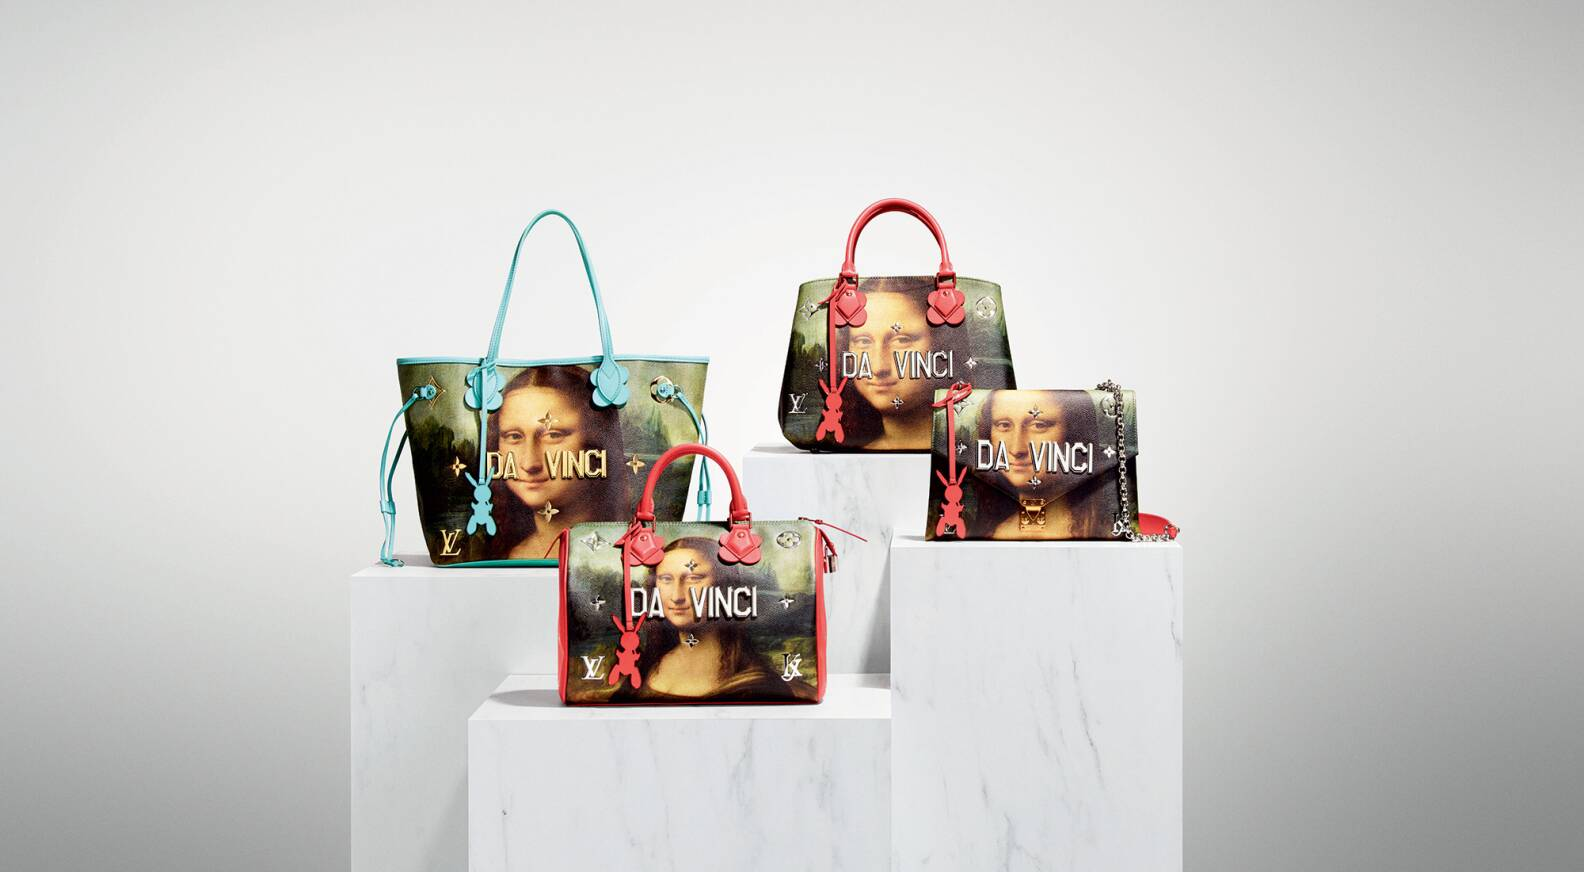 fe093ec763 Louis Vuitton unveils Masters, a collaboration with artist Jeff Koons - LVMH